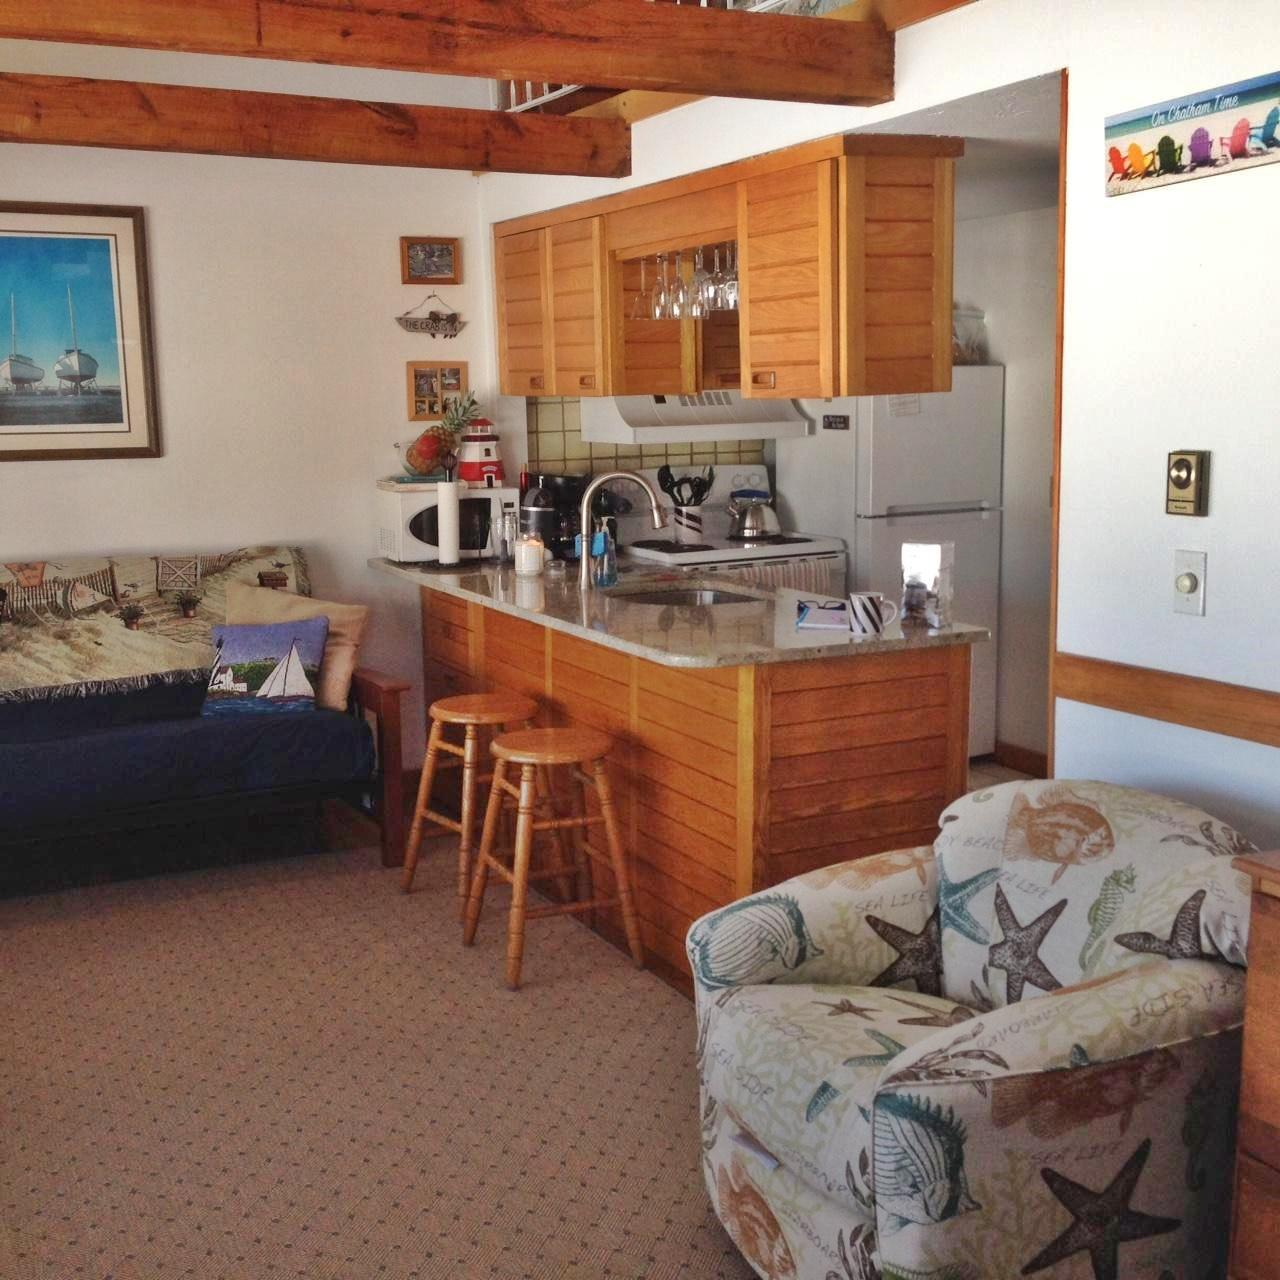 Chatham Vacation Rental Condo In Cape Cod MA02633, On